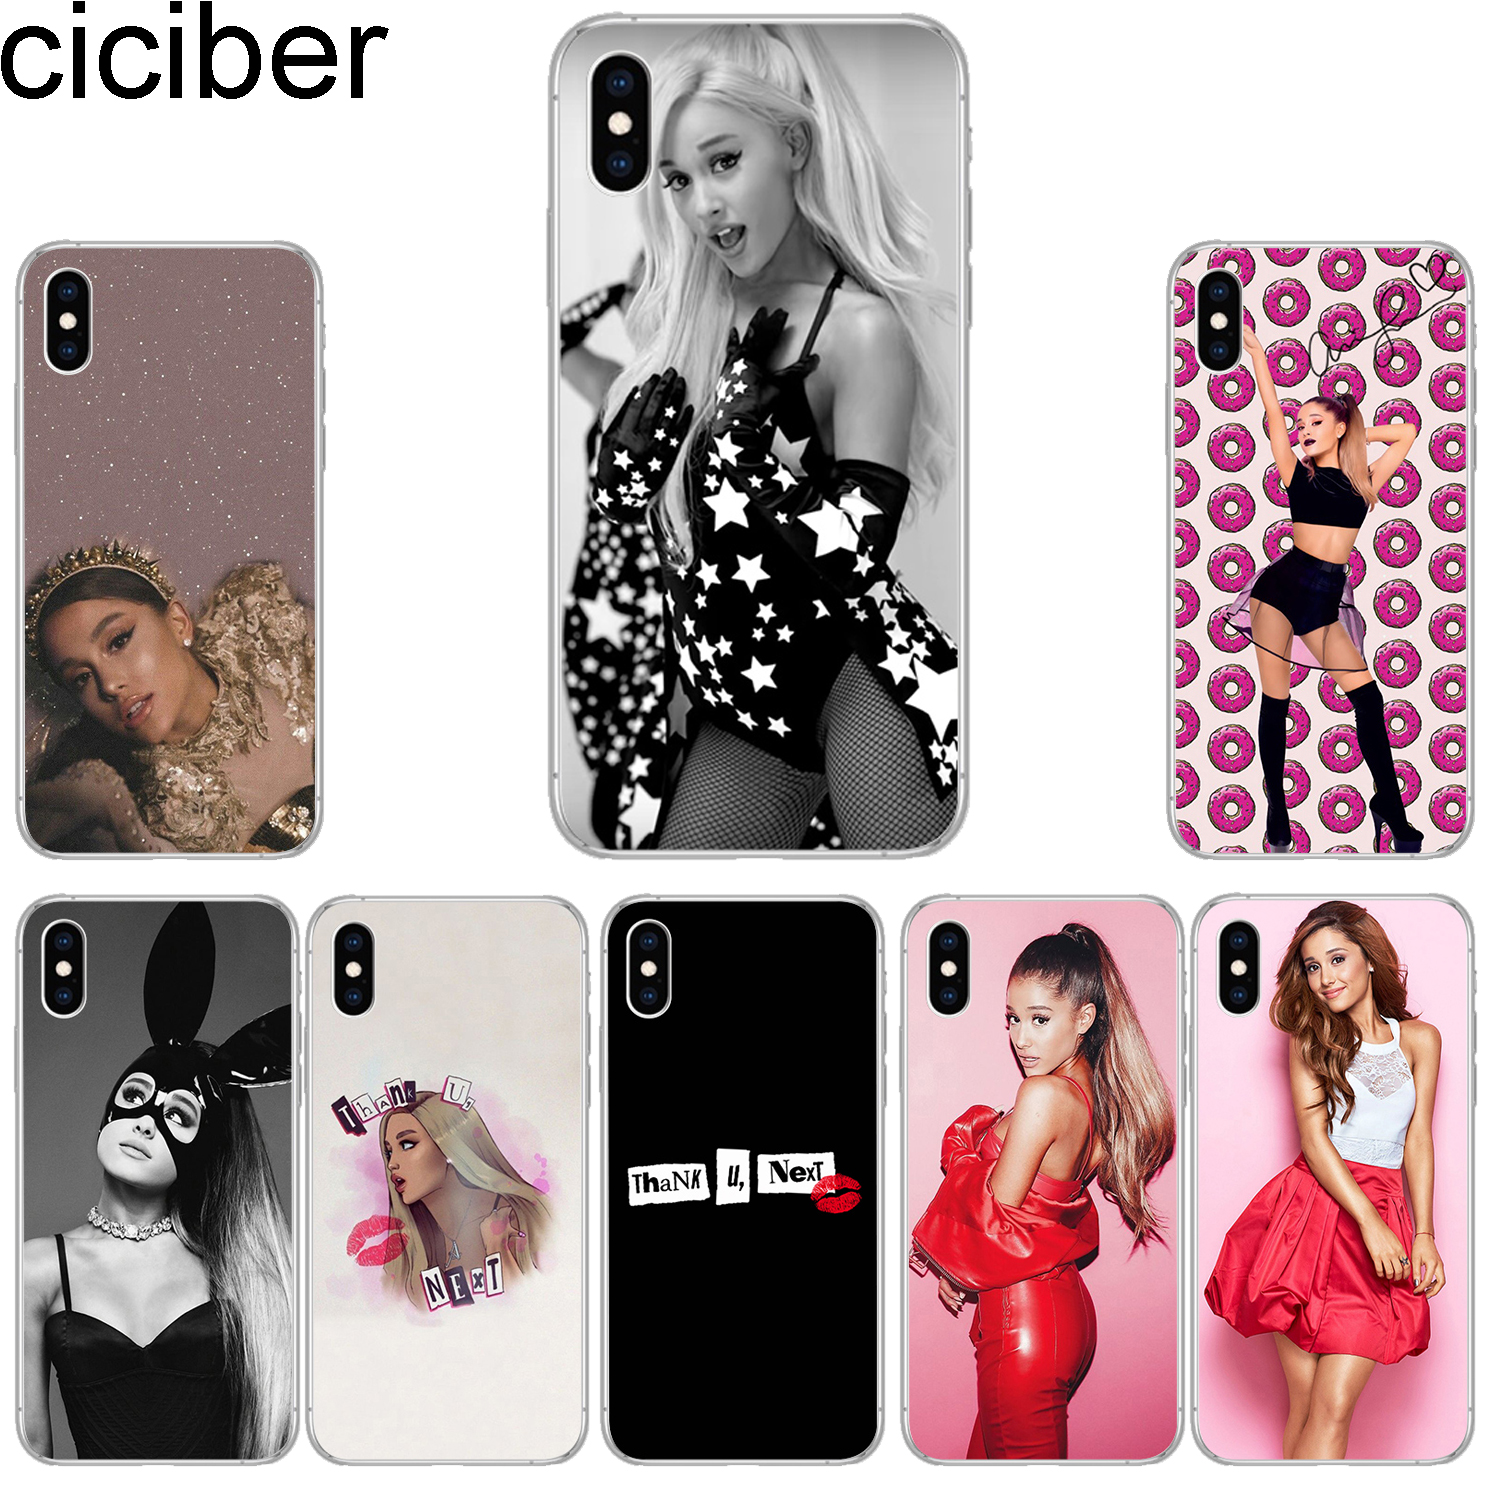 870187d1496 ciciber Phone Cases for iPhone 8 7 6 6s Plus SE 5s Soft TPU Back Cover for  iPhone X Xs XR XS Max Case Ariana Grande Coque Fundas